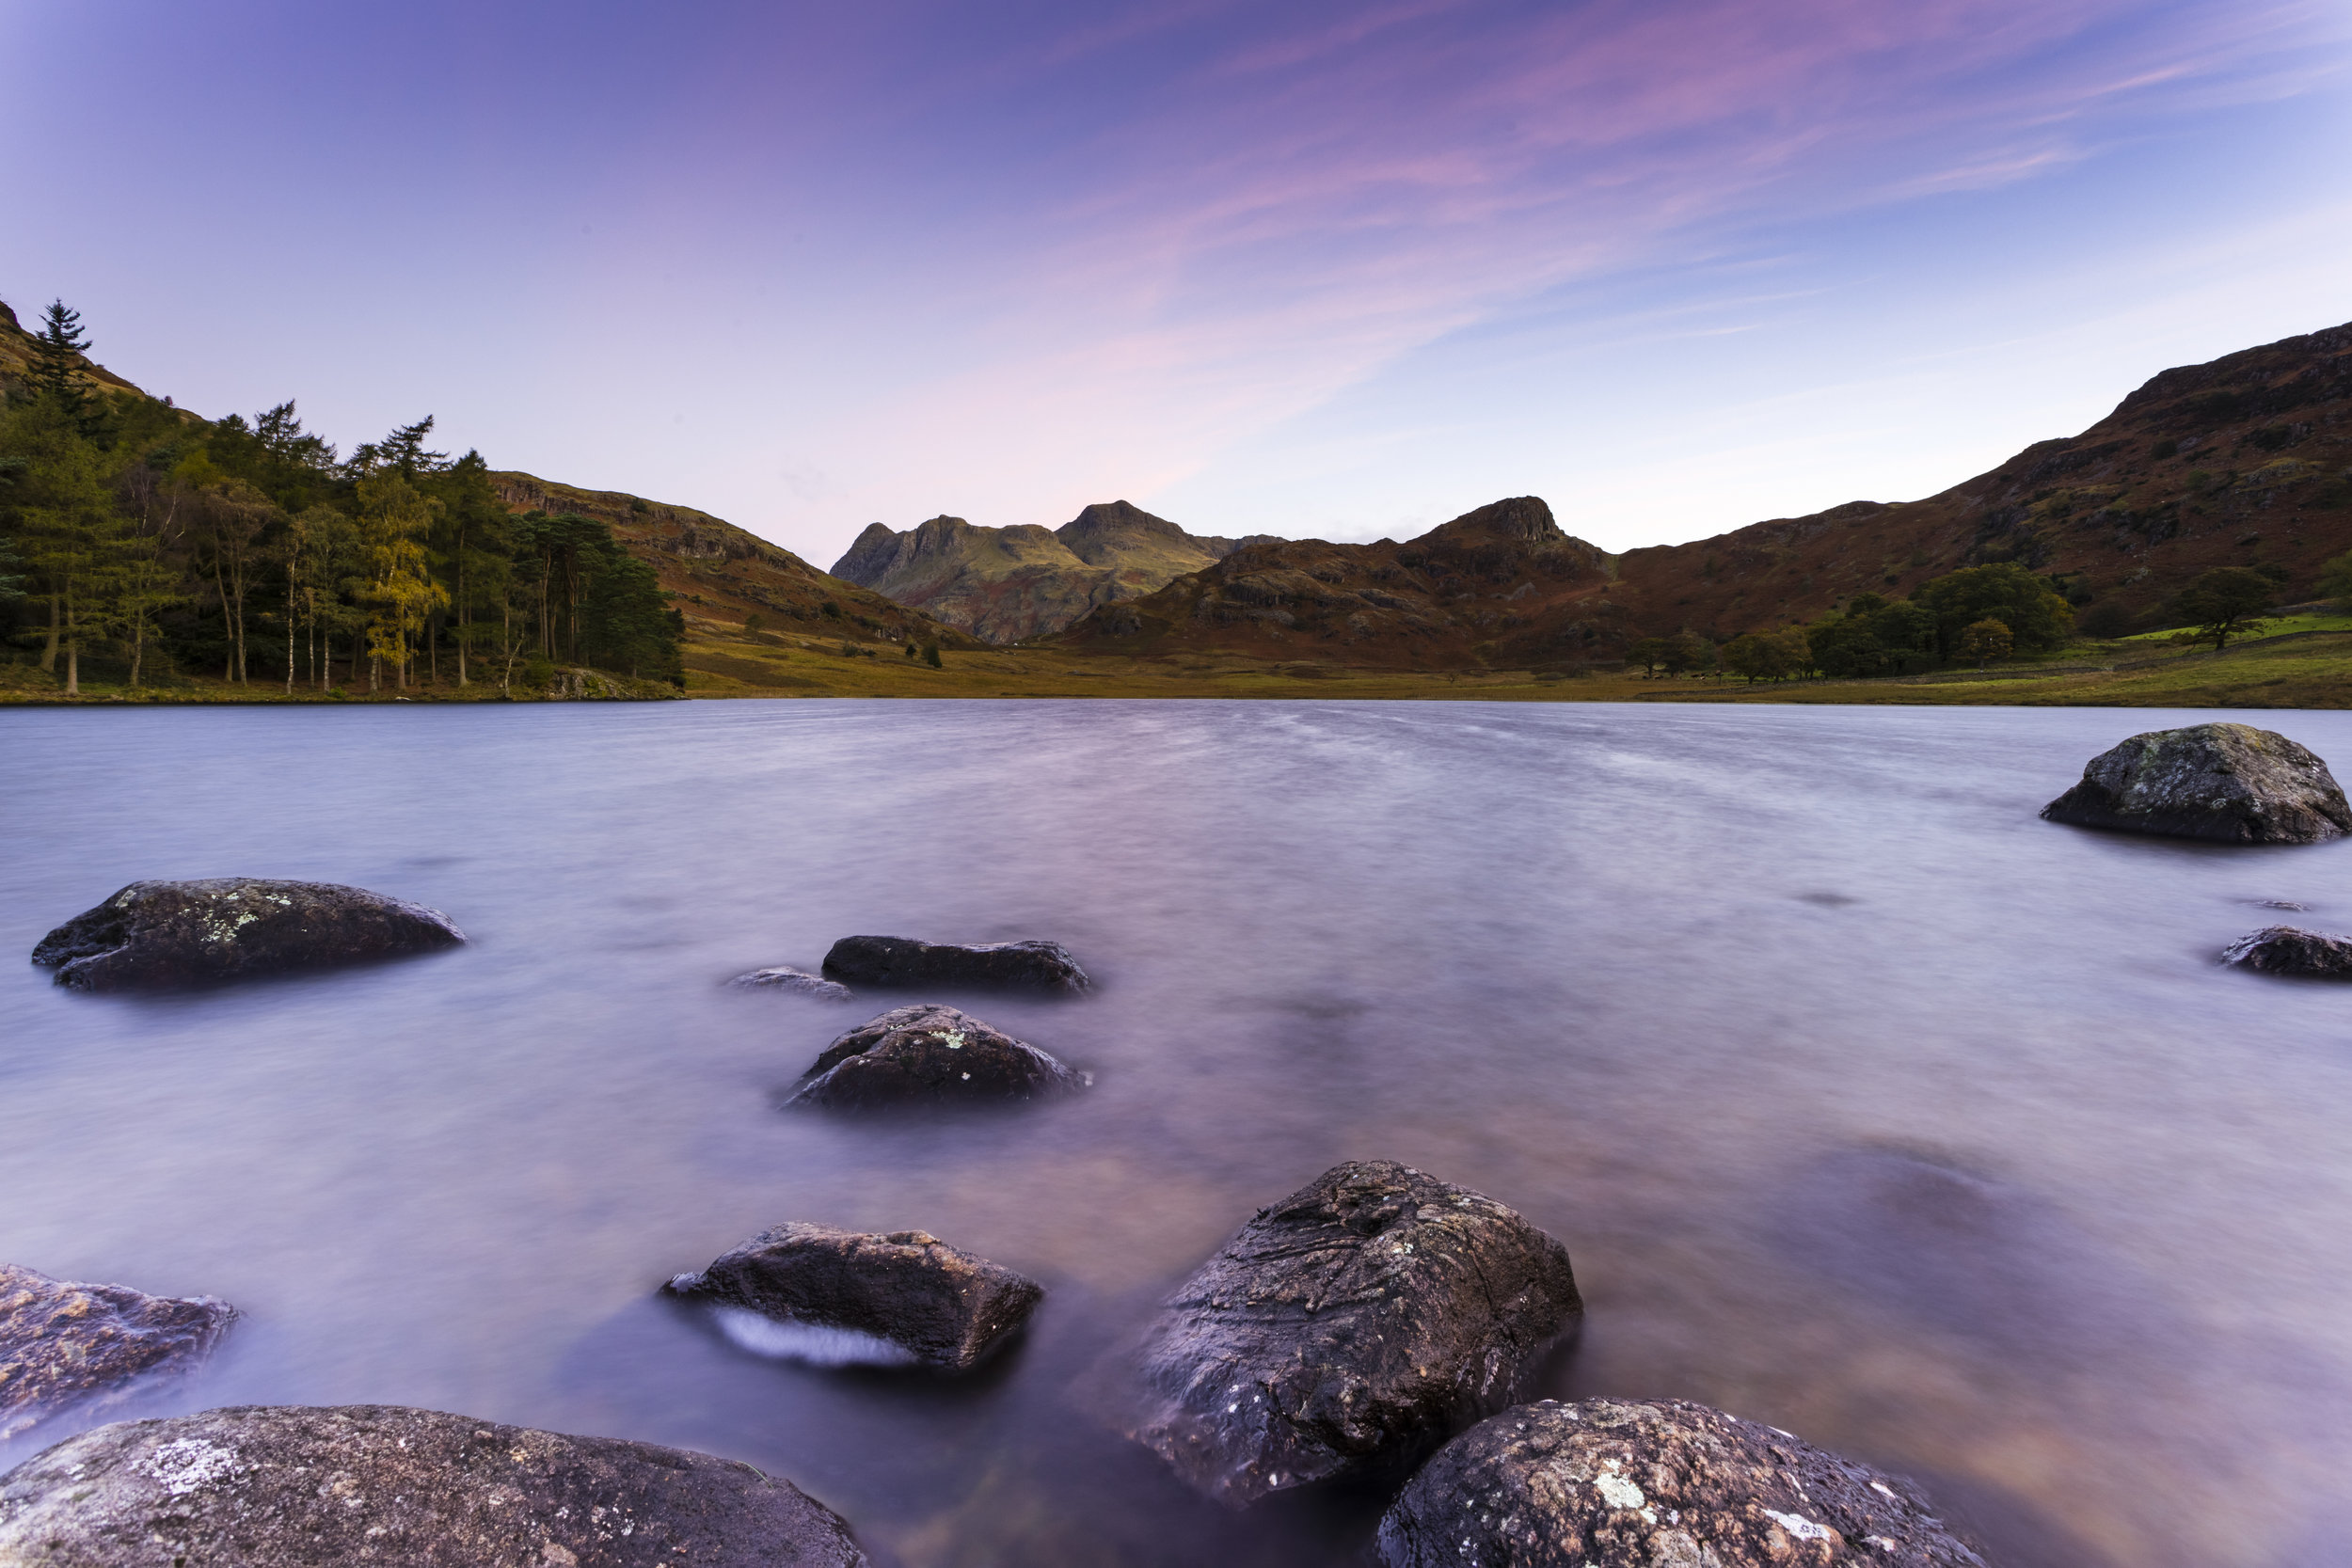 Blea Tarn, Lake District, UK